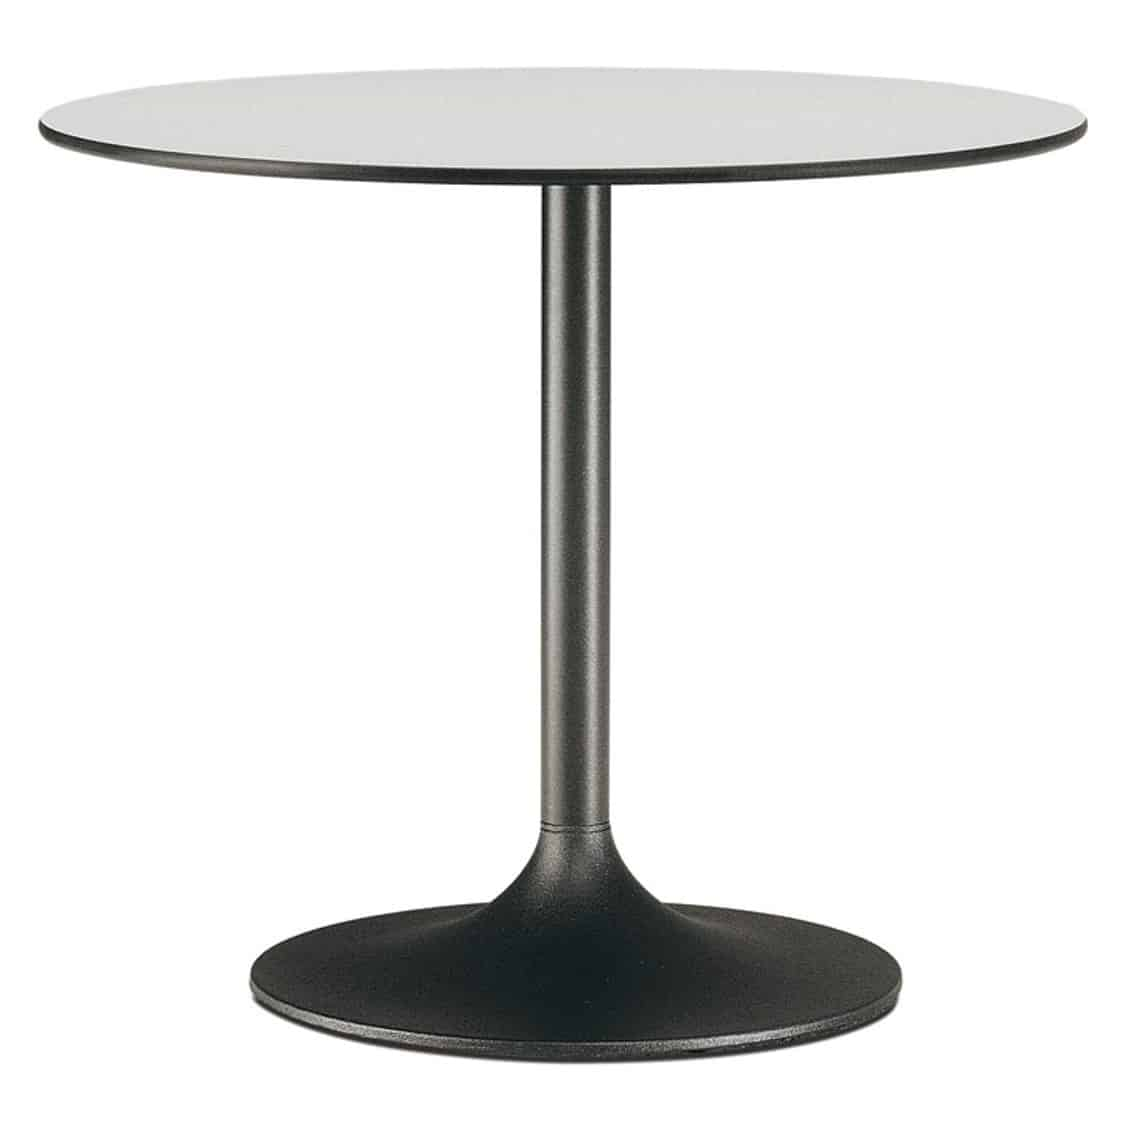 Dream Table Base 4843 DeFrae Contract Furniture